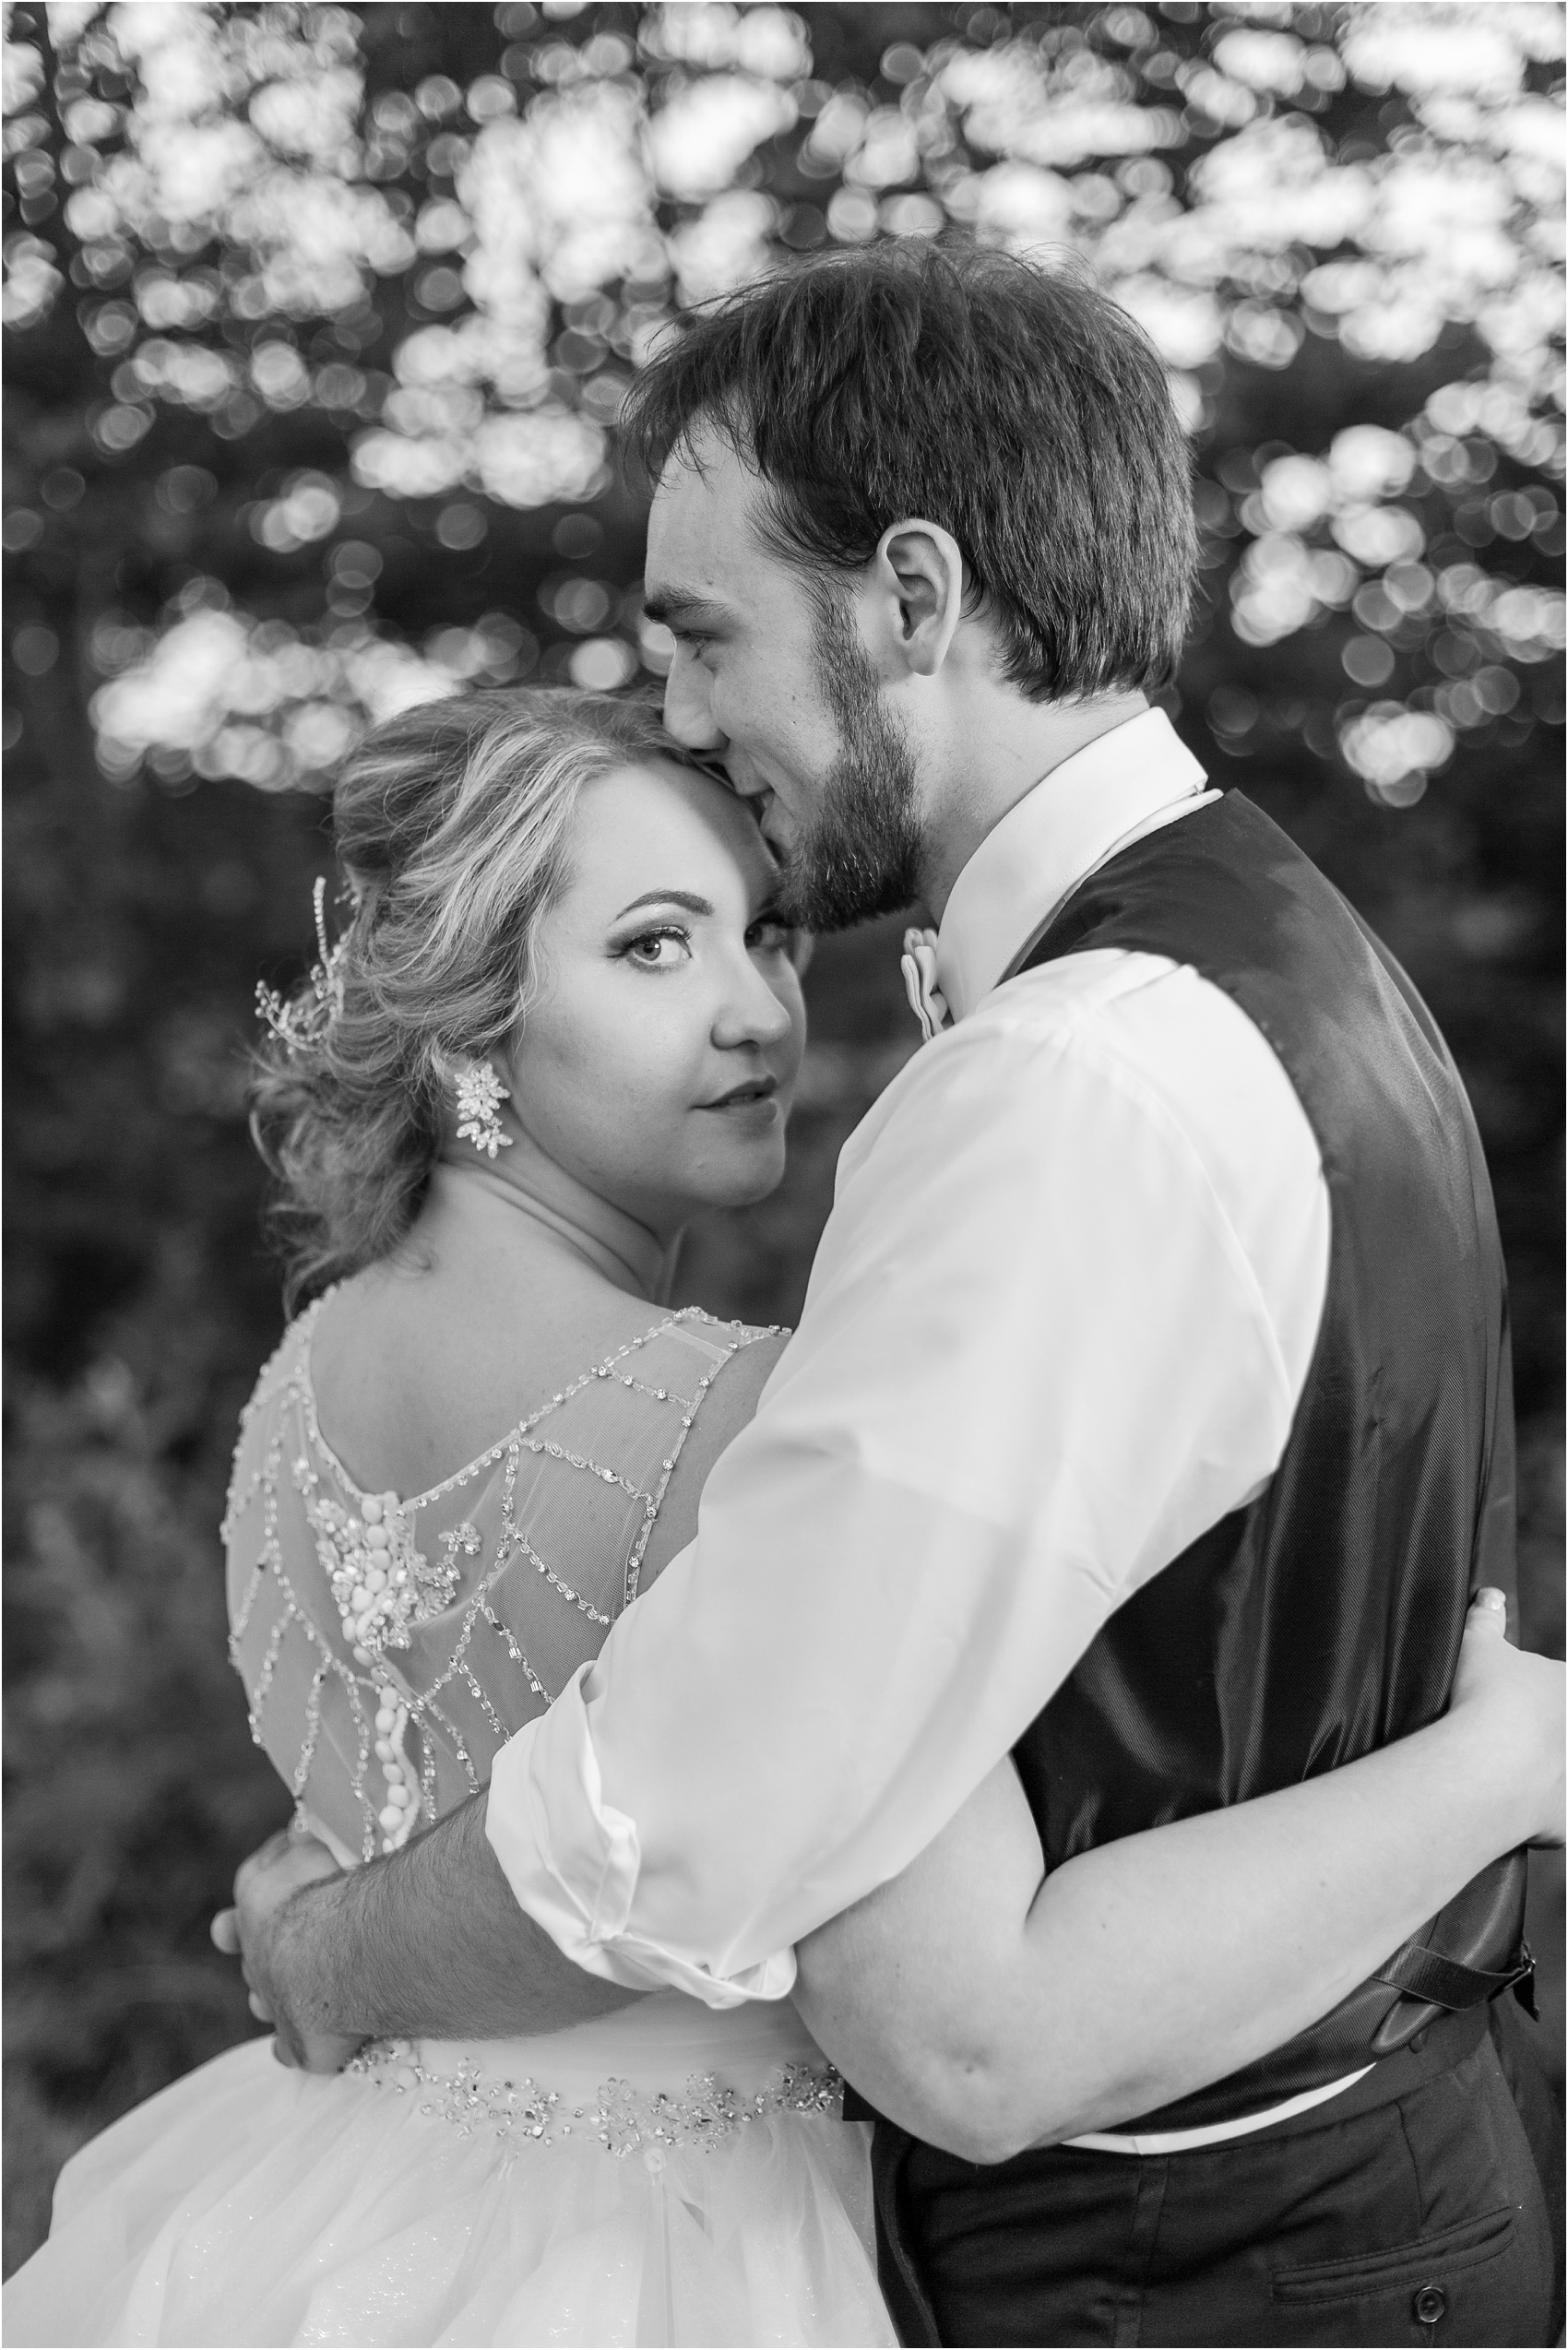 lord-of-the-rings-inspired-wedding-photos-at-crystal-gardens-in-howell-mi-by-courtney-carolyn-photography_0125.jpg